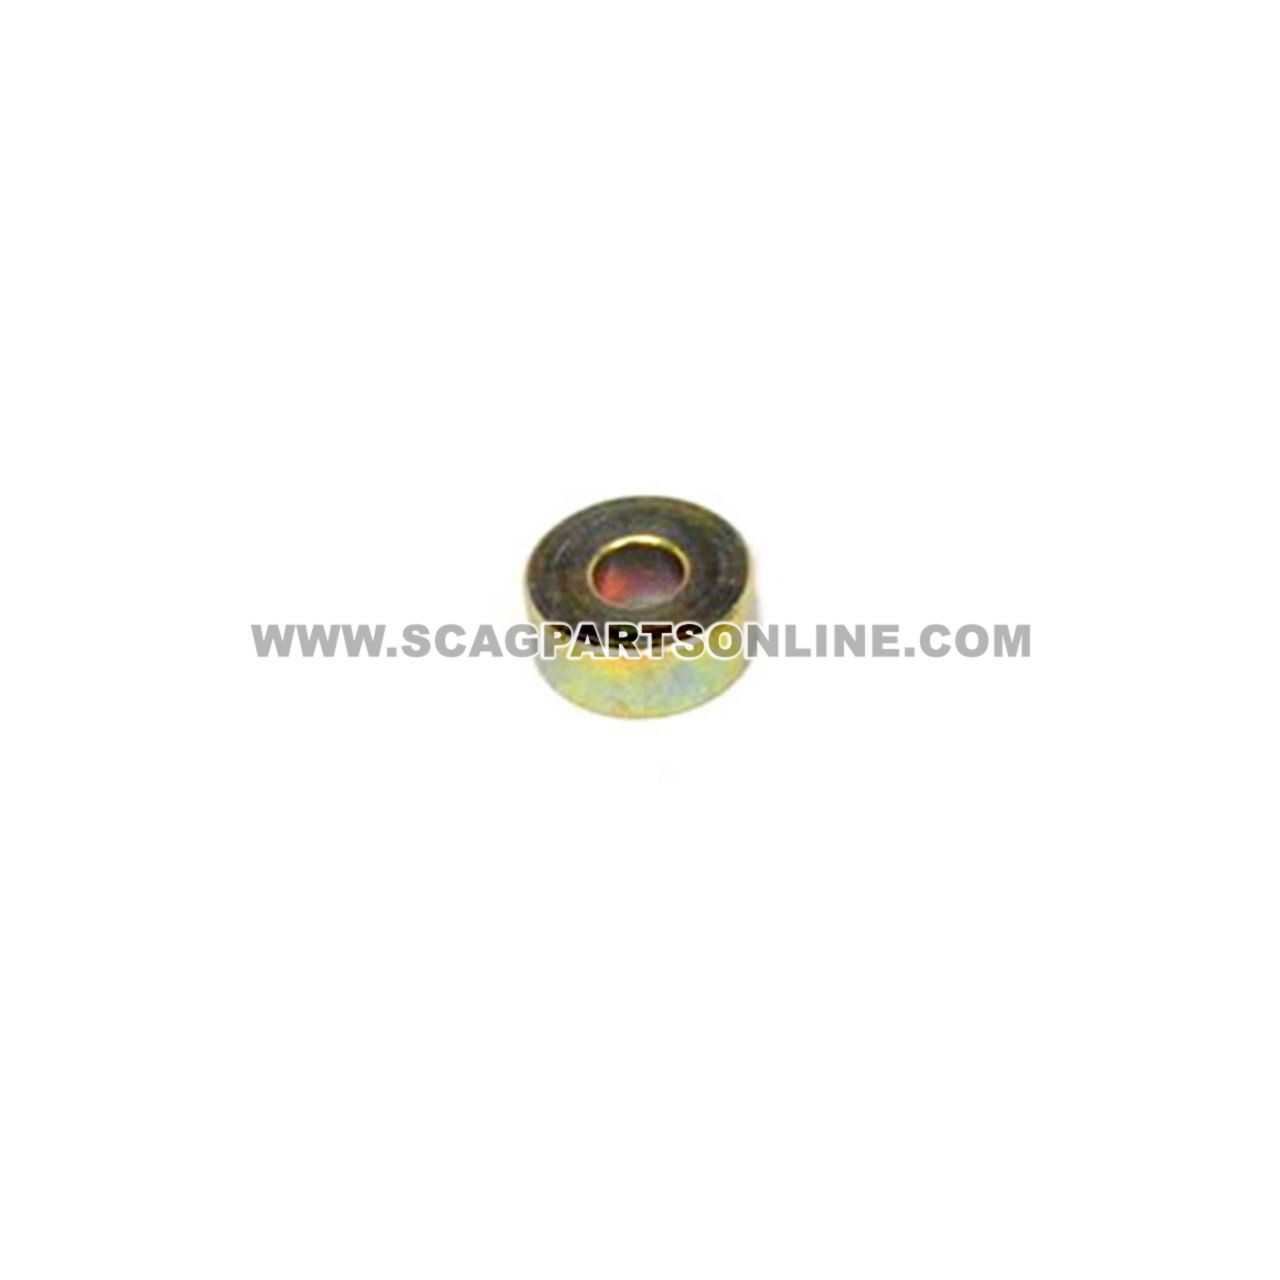 Scag SPACER, J PULL ROD 43077 - Image 1